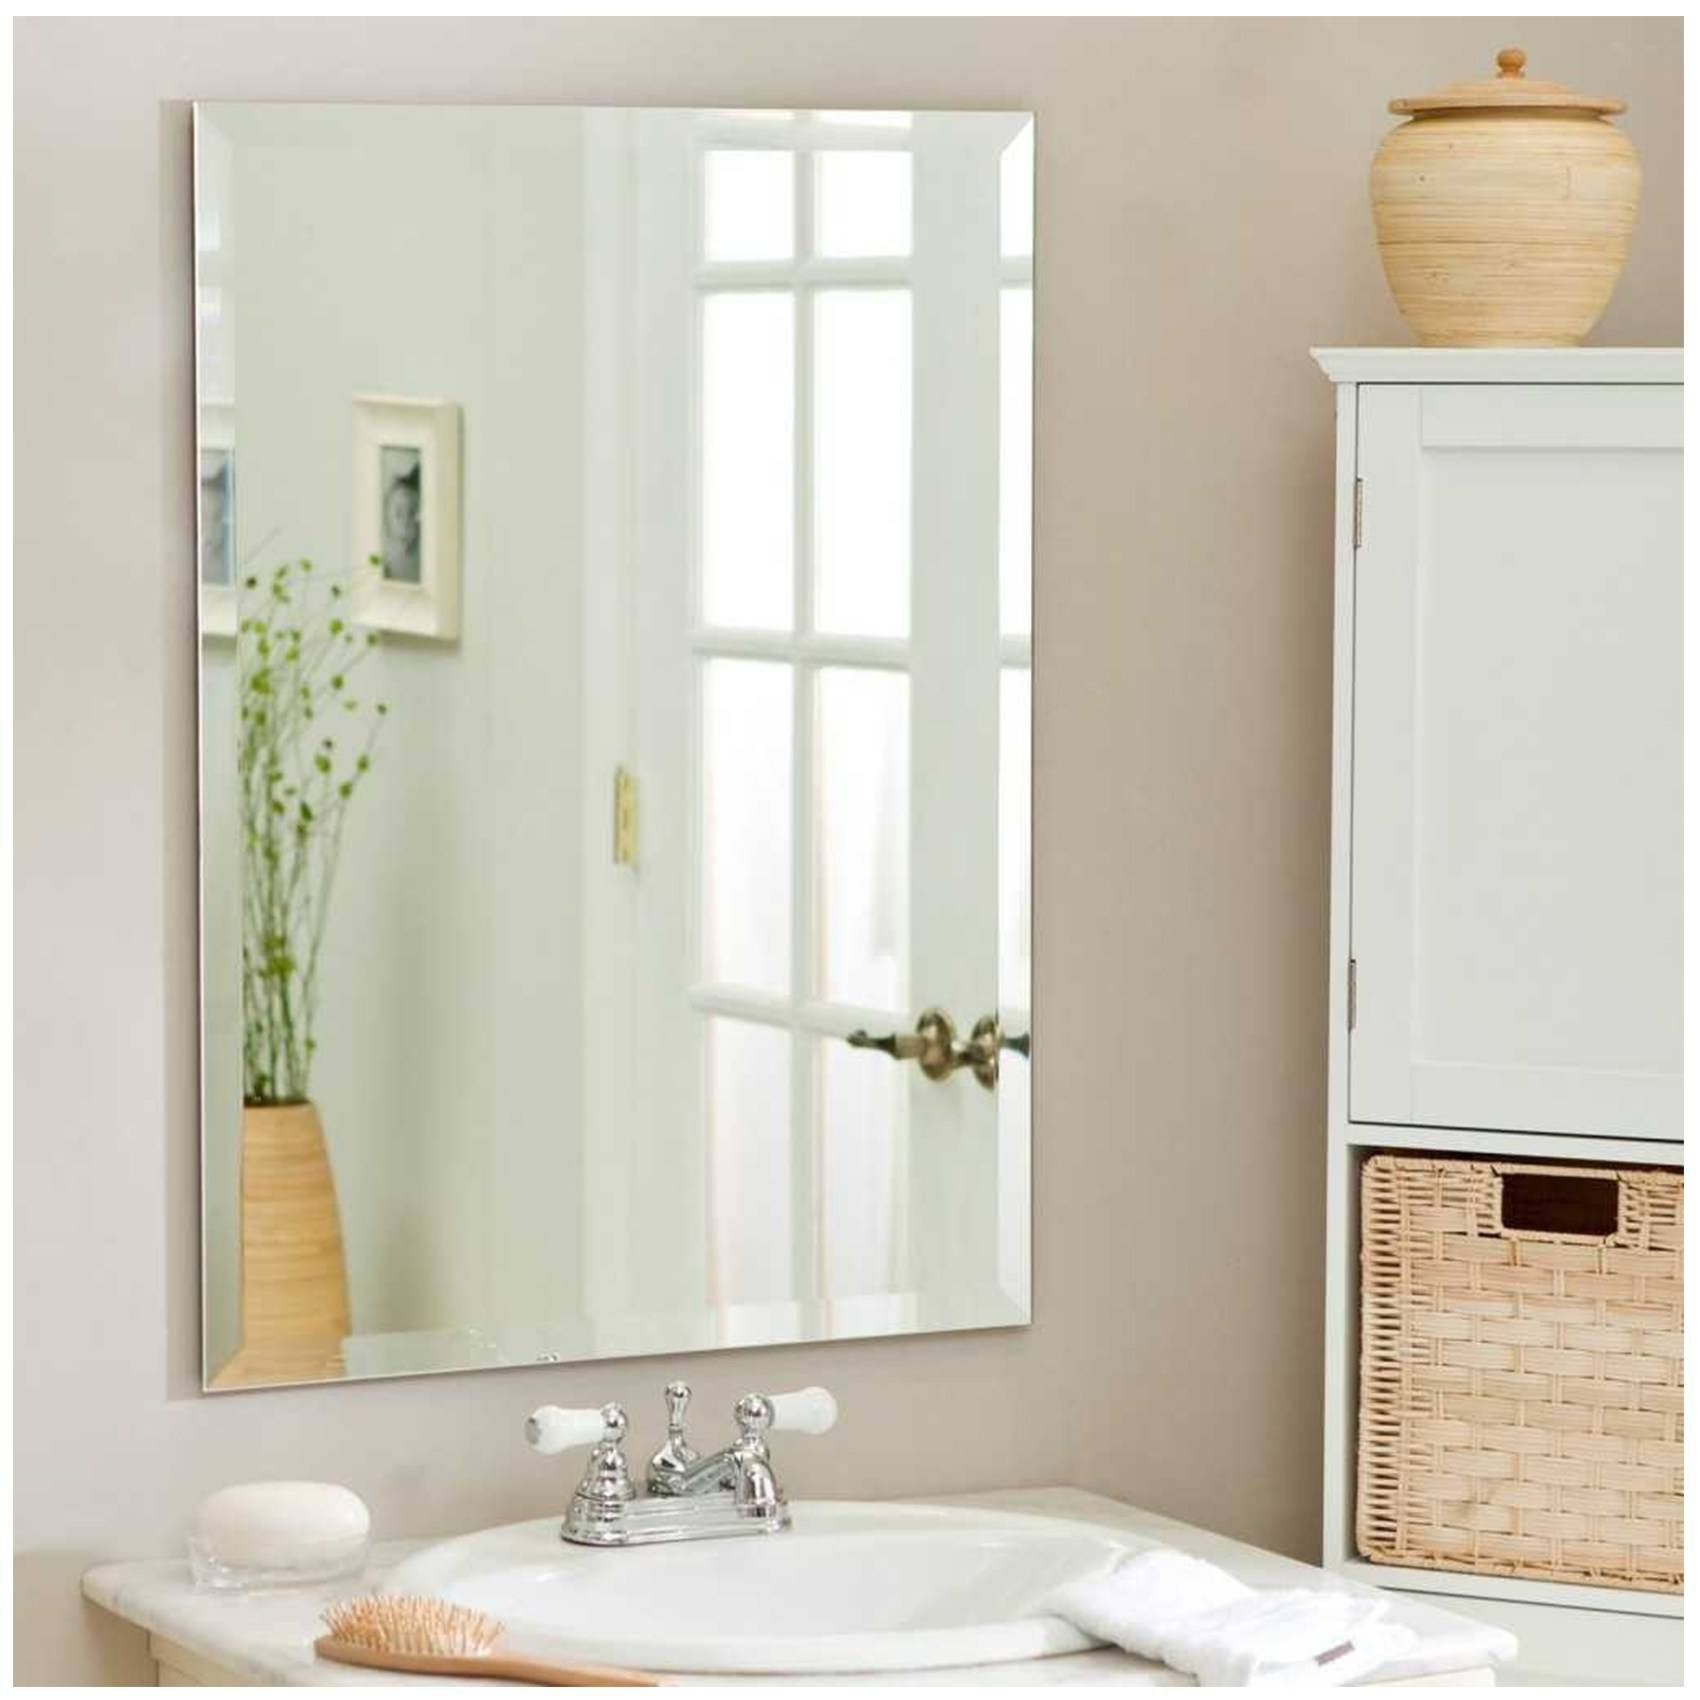 15 the best wall mirrors without frame Frames for bathroom wall mirrors